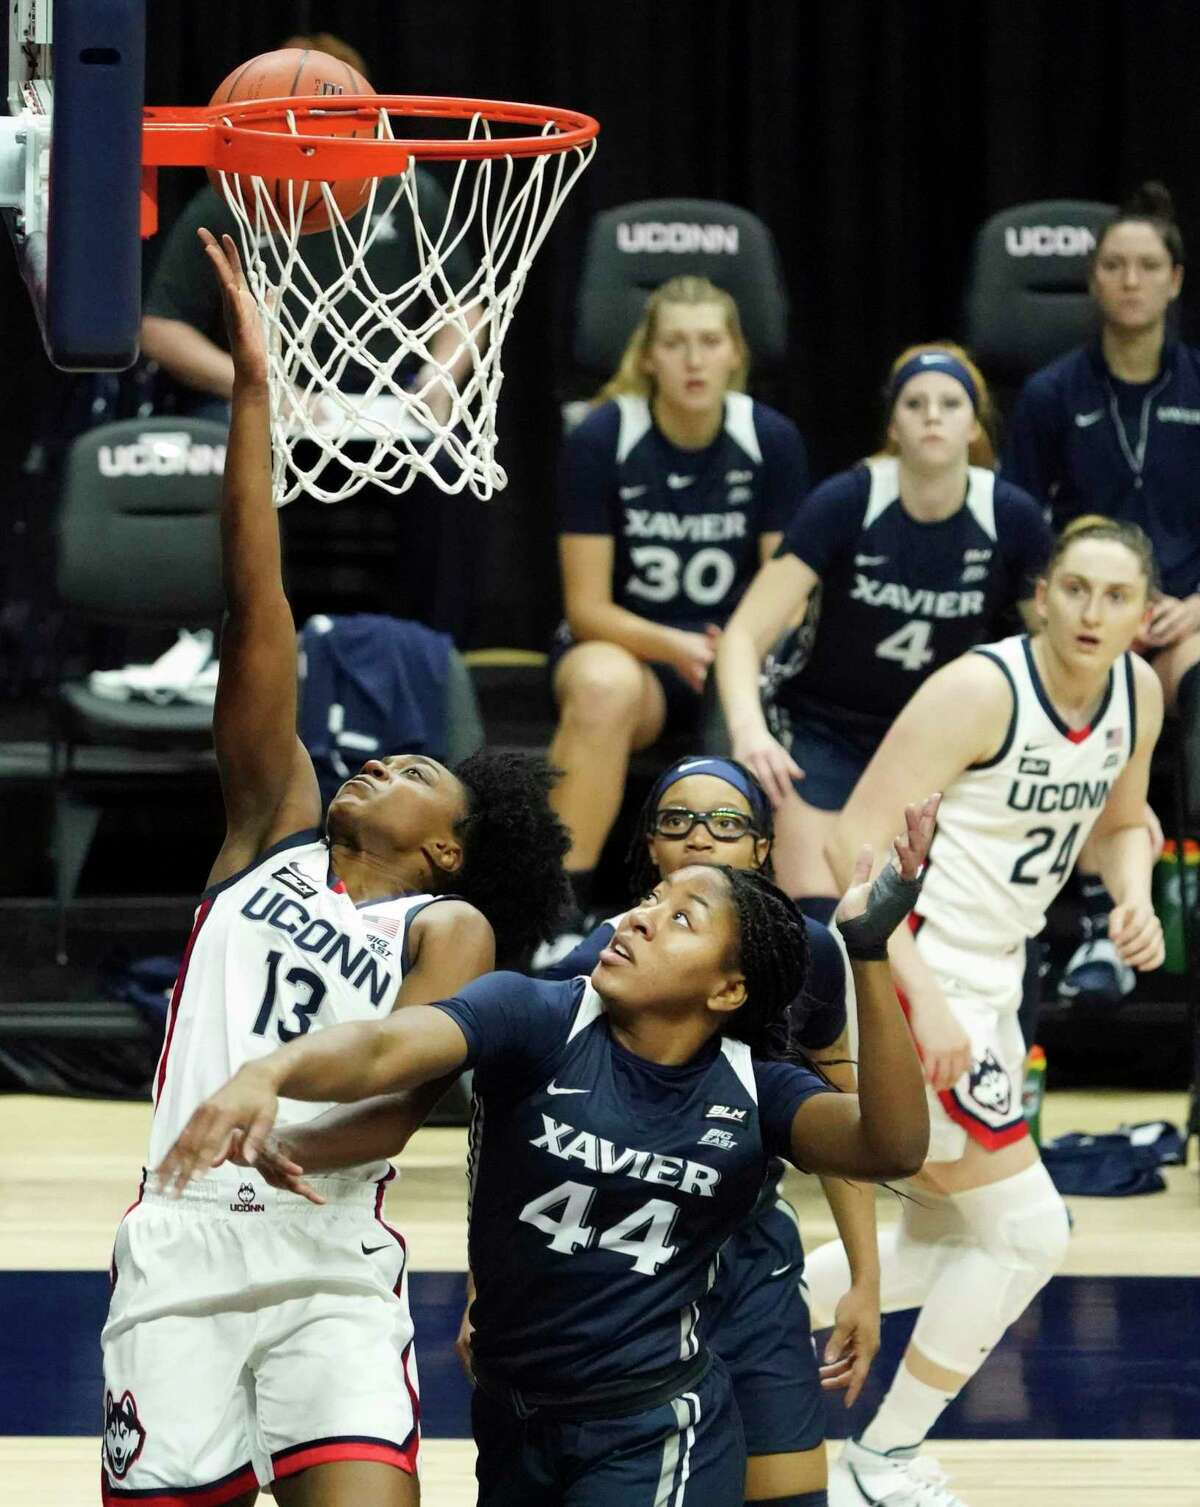 UConn's Christyn Williams (13) shoots and is fouled by Xavier's Ayanna Townsend during the first half Saturday in Storrs.